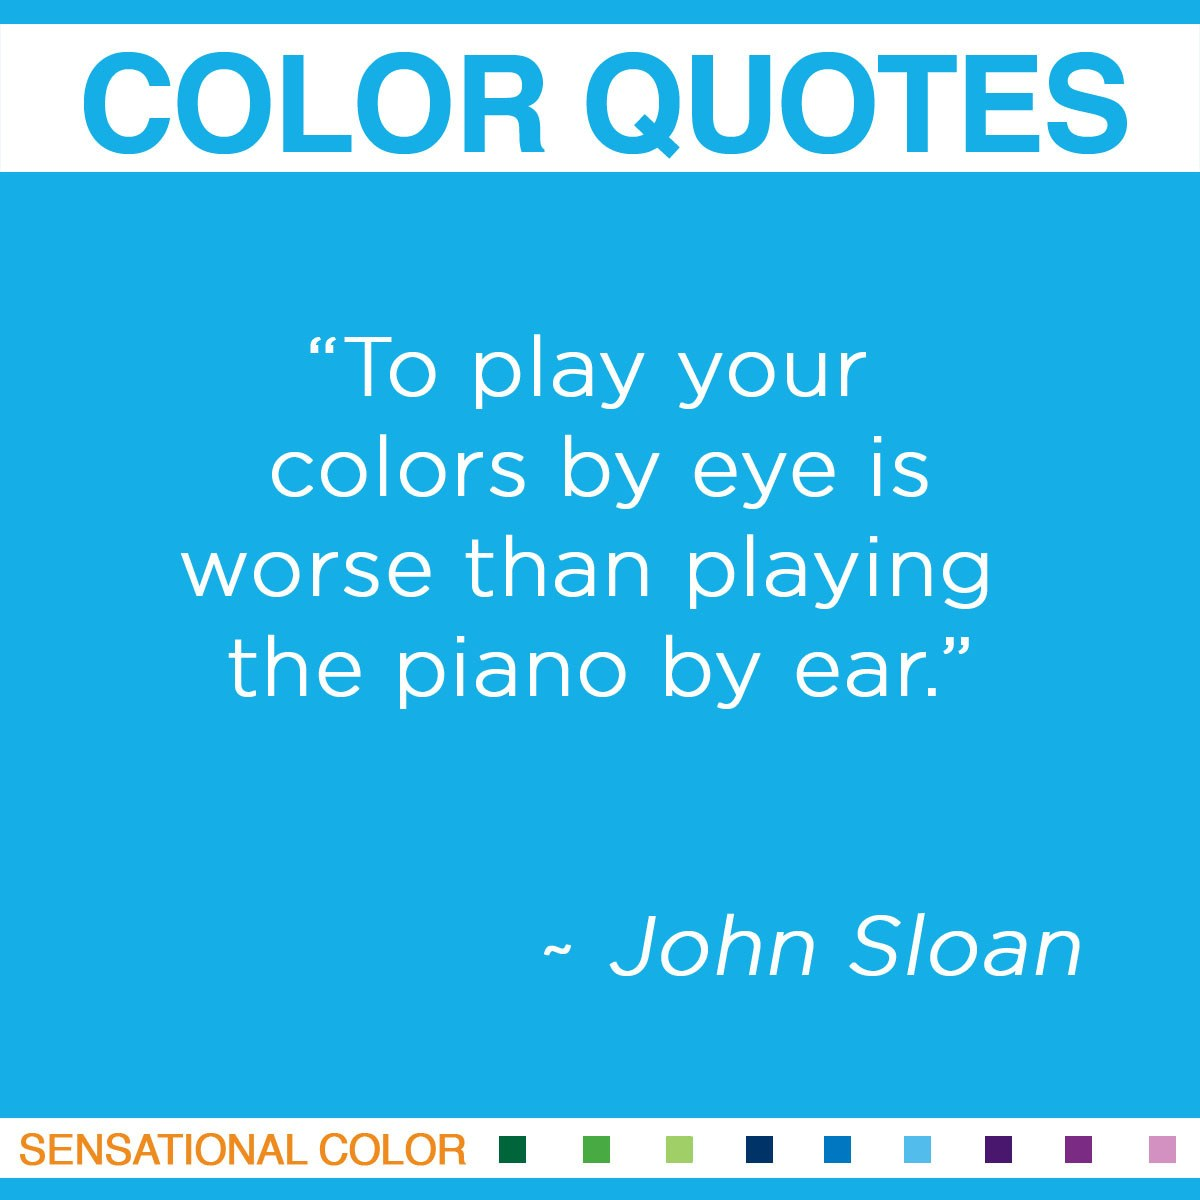 """To play your colors by eye is worse than playing the piano by ear."" - John Sloan"